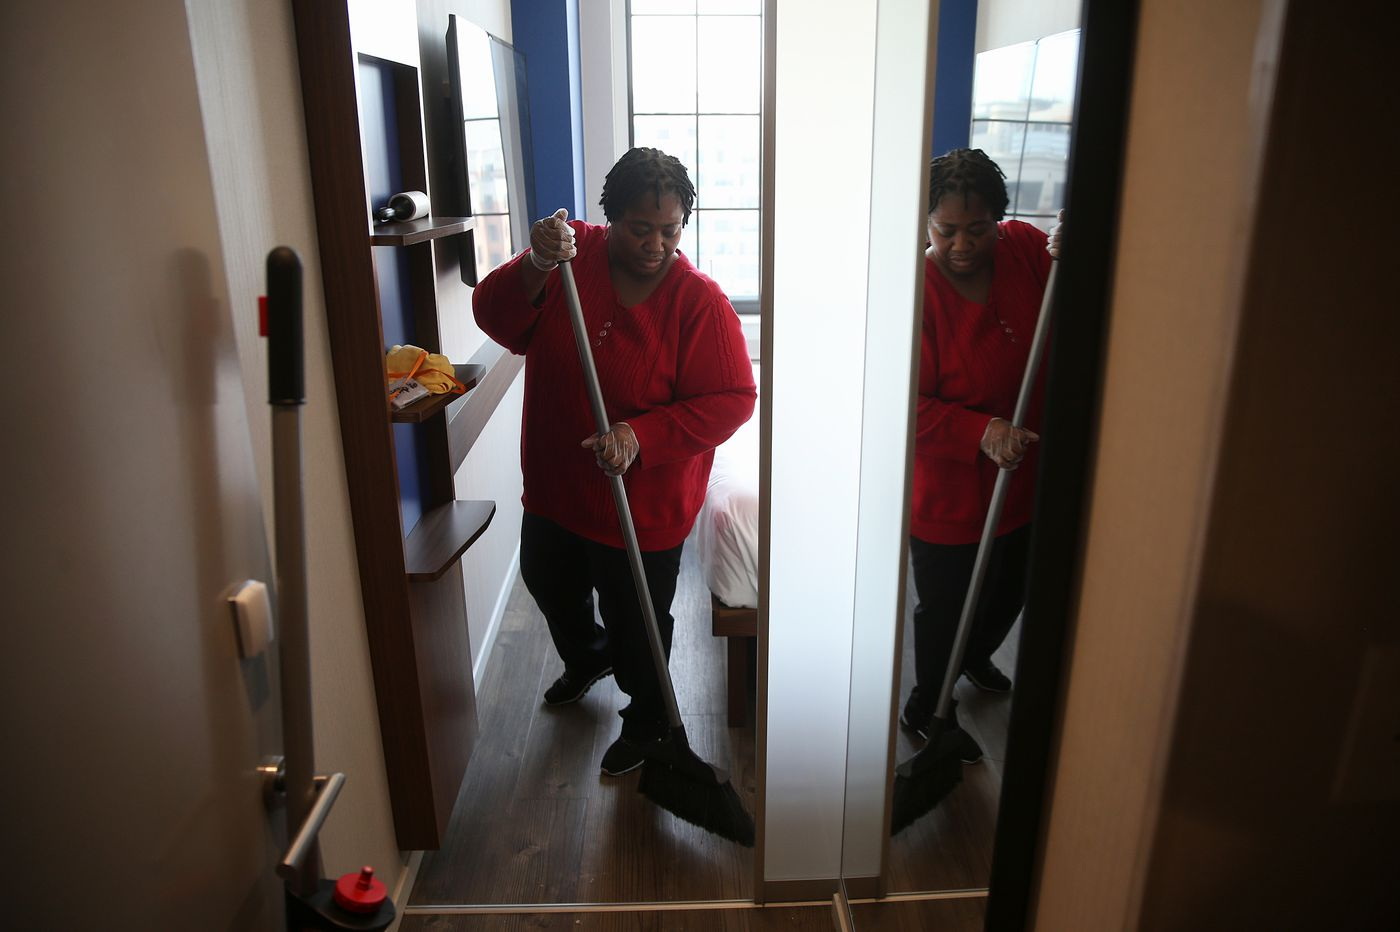 N.J. requires hotels to provide 'panic buttons' for cleaners